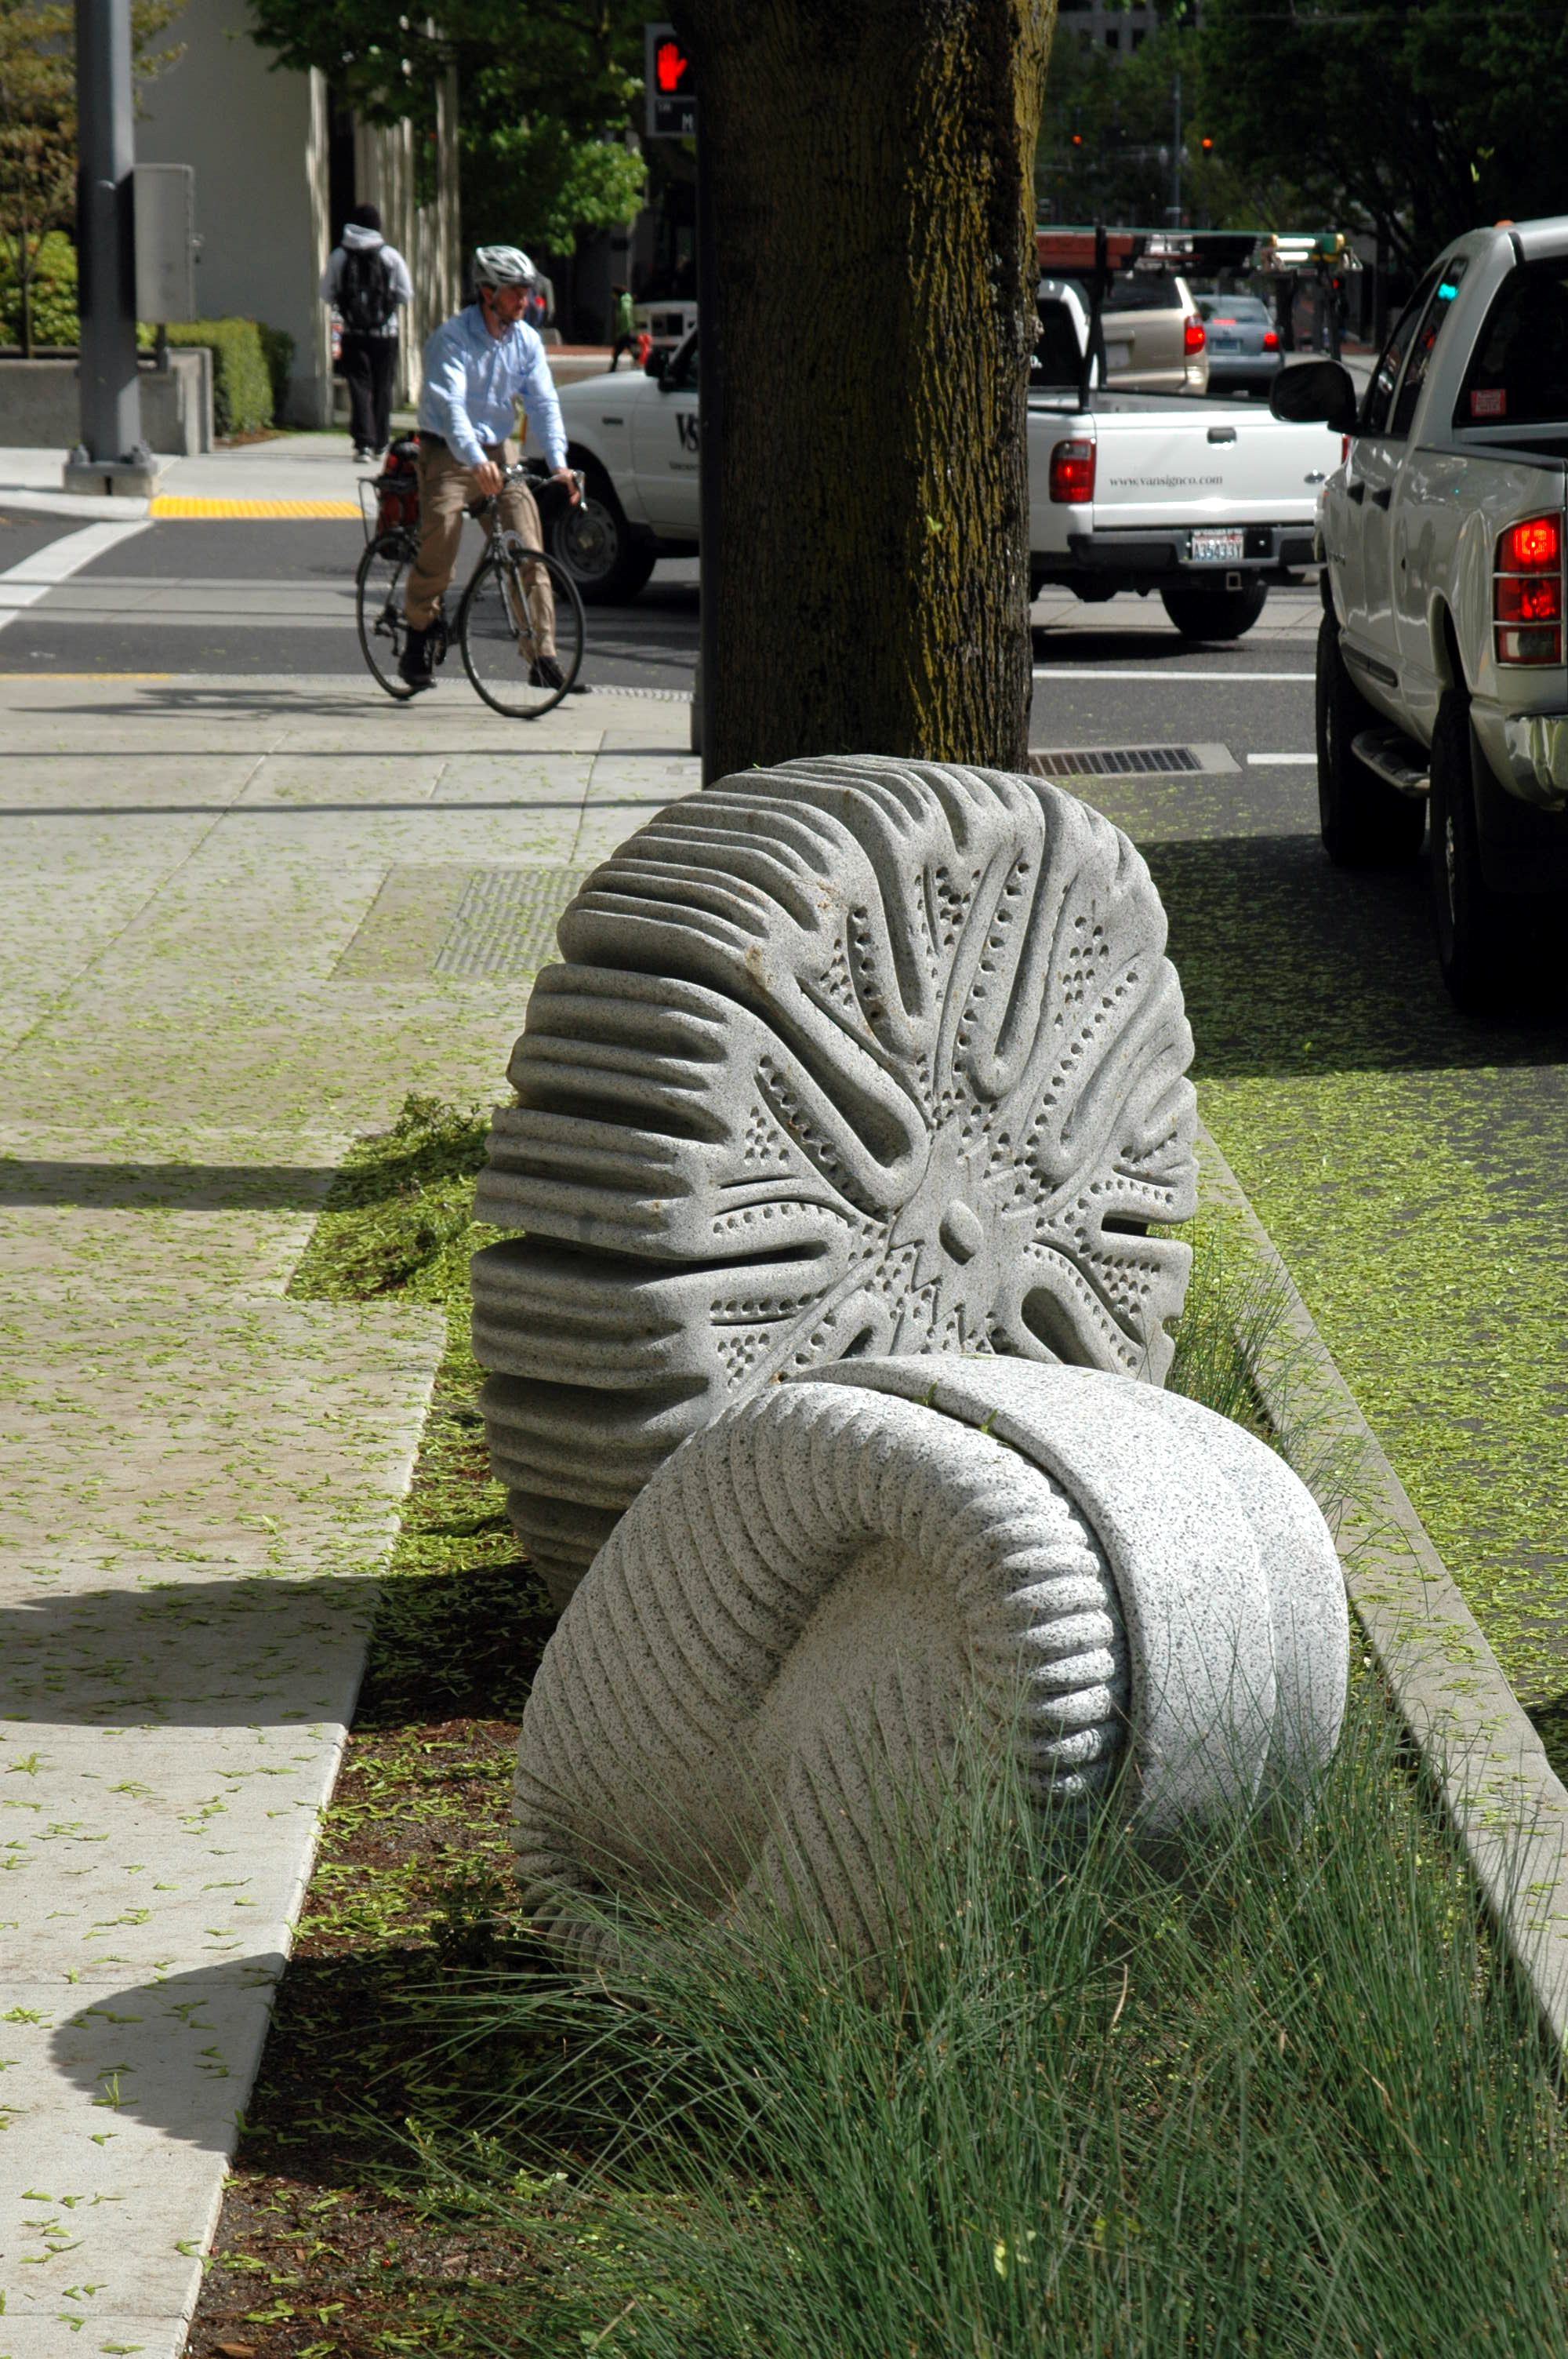 Urban Hydrology - Urban HydrologyArtist: Fernanda D'Agostino2009Carved granitePortland, ORUrban Hydrology consists of twelve outdoor sculptures along the 6th Avenue transit mall in Portland, OR, between Hall and Mill Streets. The sculptures depict oversized diatoms—single-celled algae organisms found in water—in dialogue with the filtration of urban runoff water by the bioswales surrounding the works.